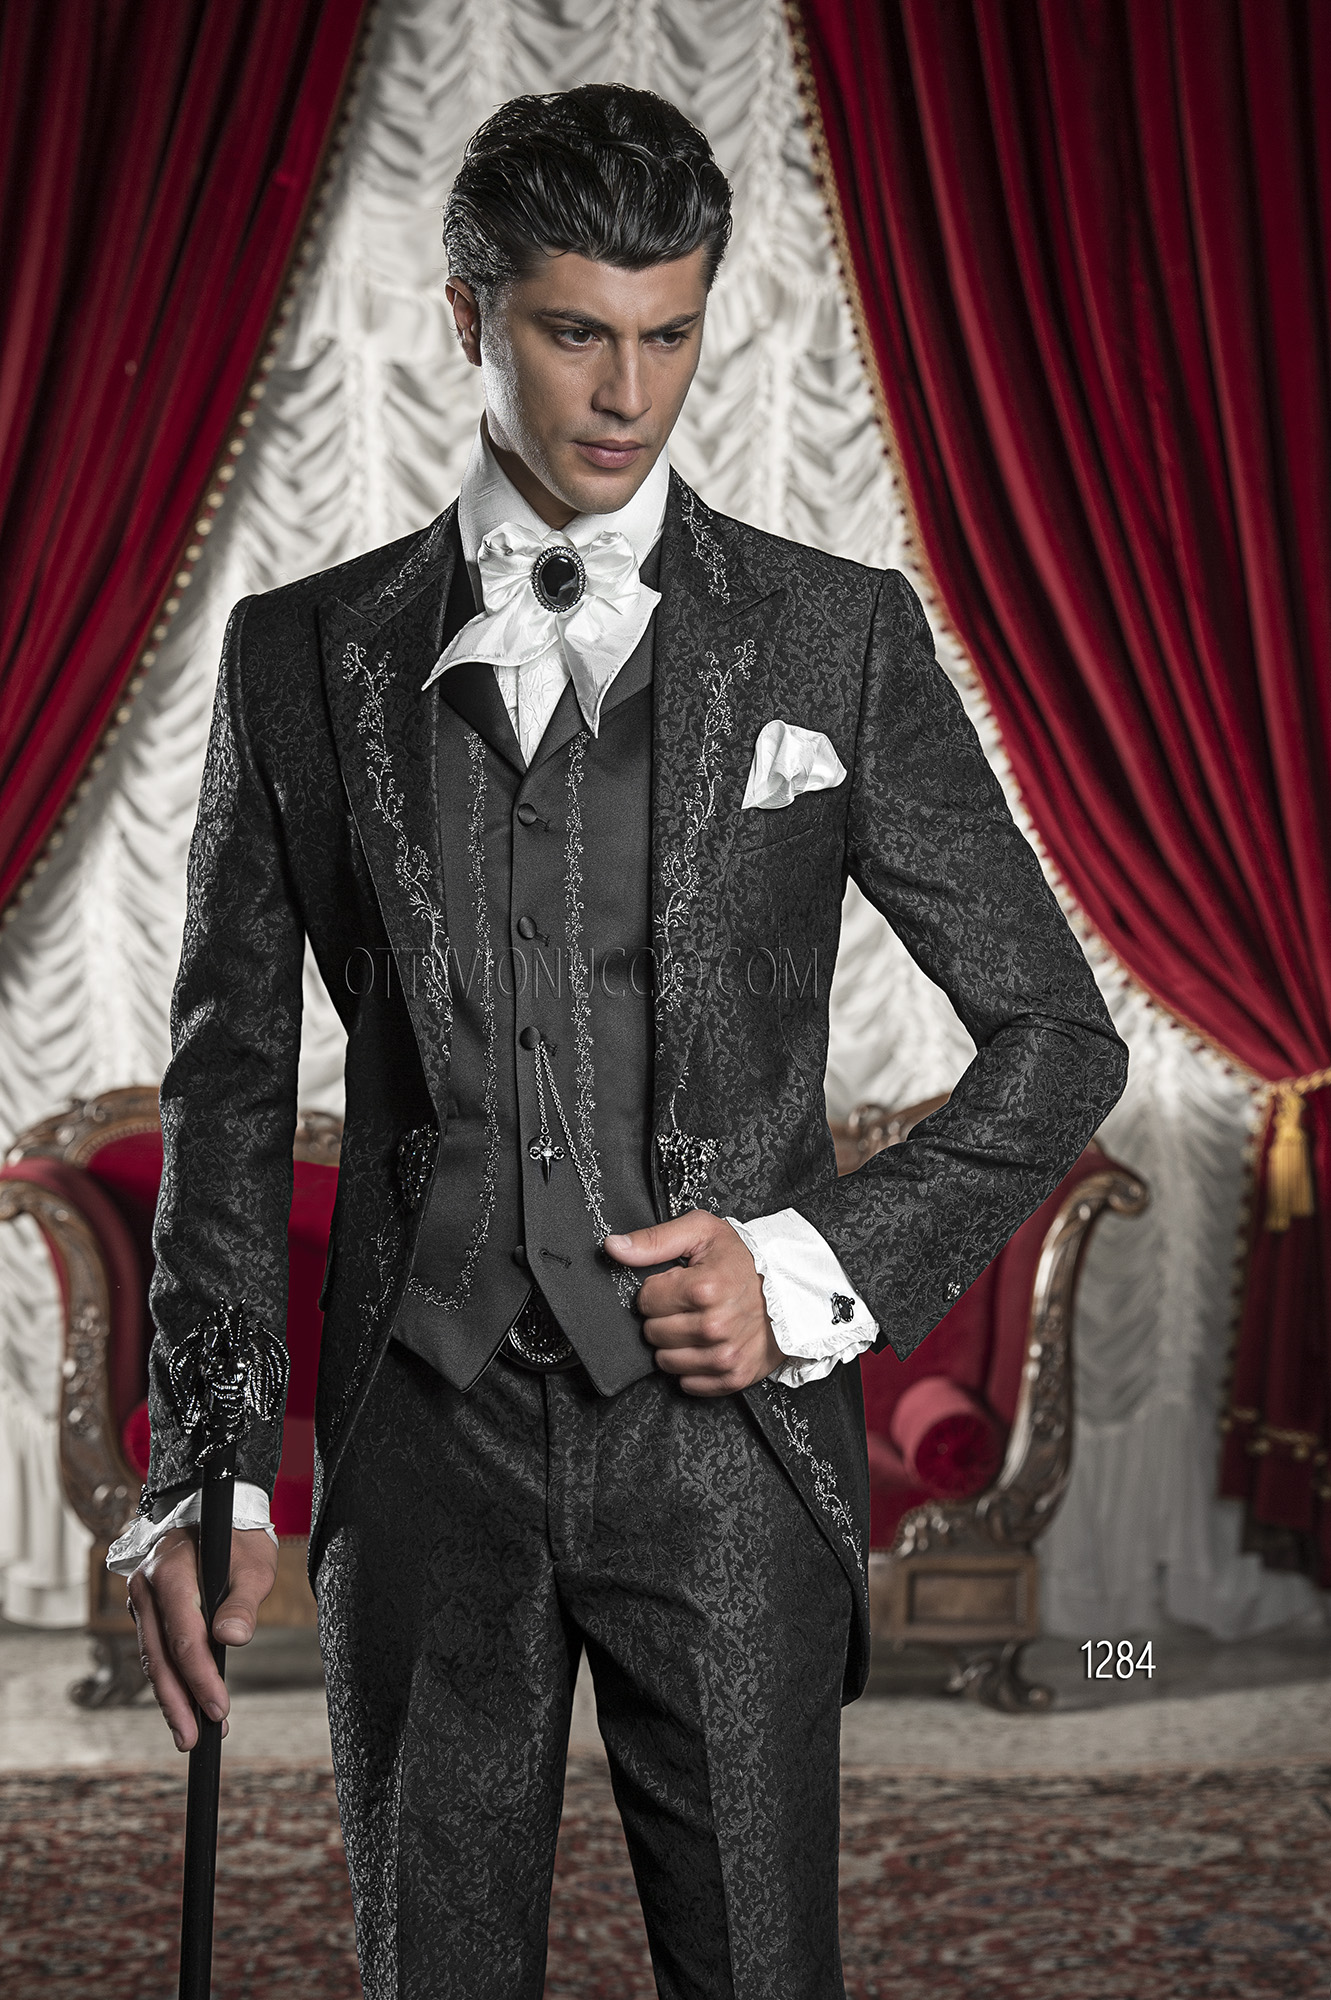 costume mariage homme en brocart noir avec broderies argent es. Black Bedroom Furniture Sets. Home Design Ideas